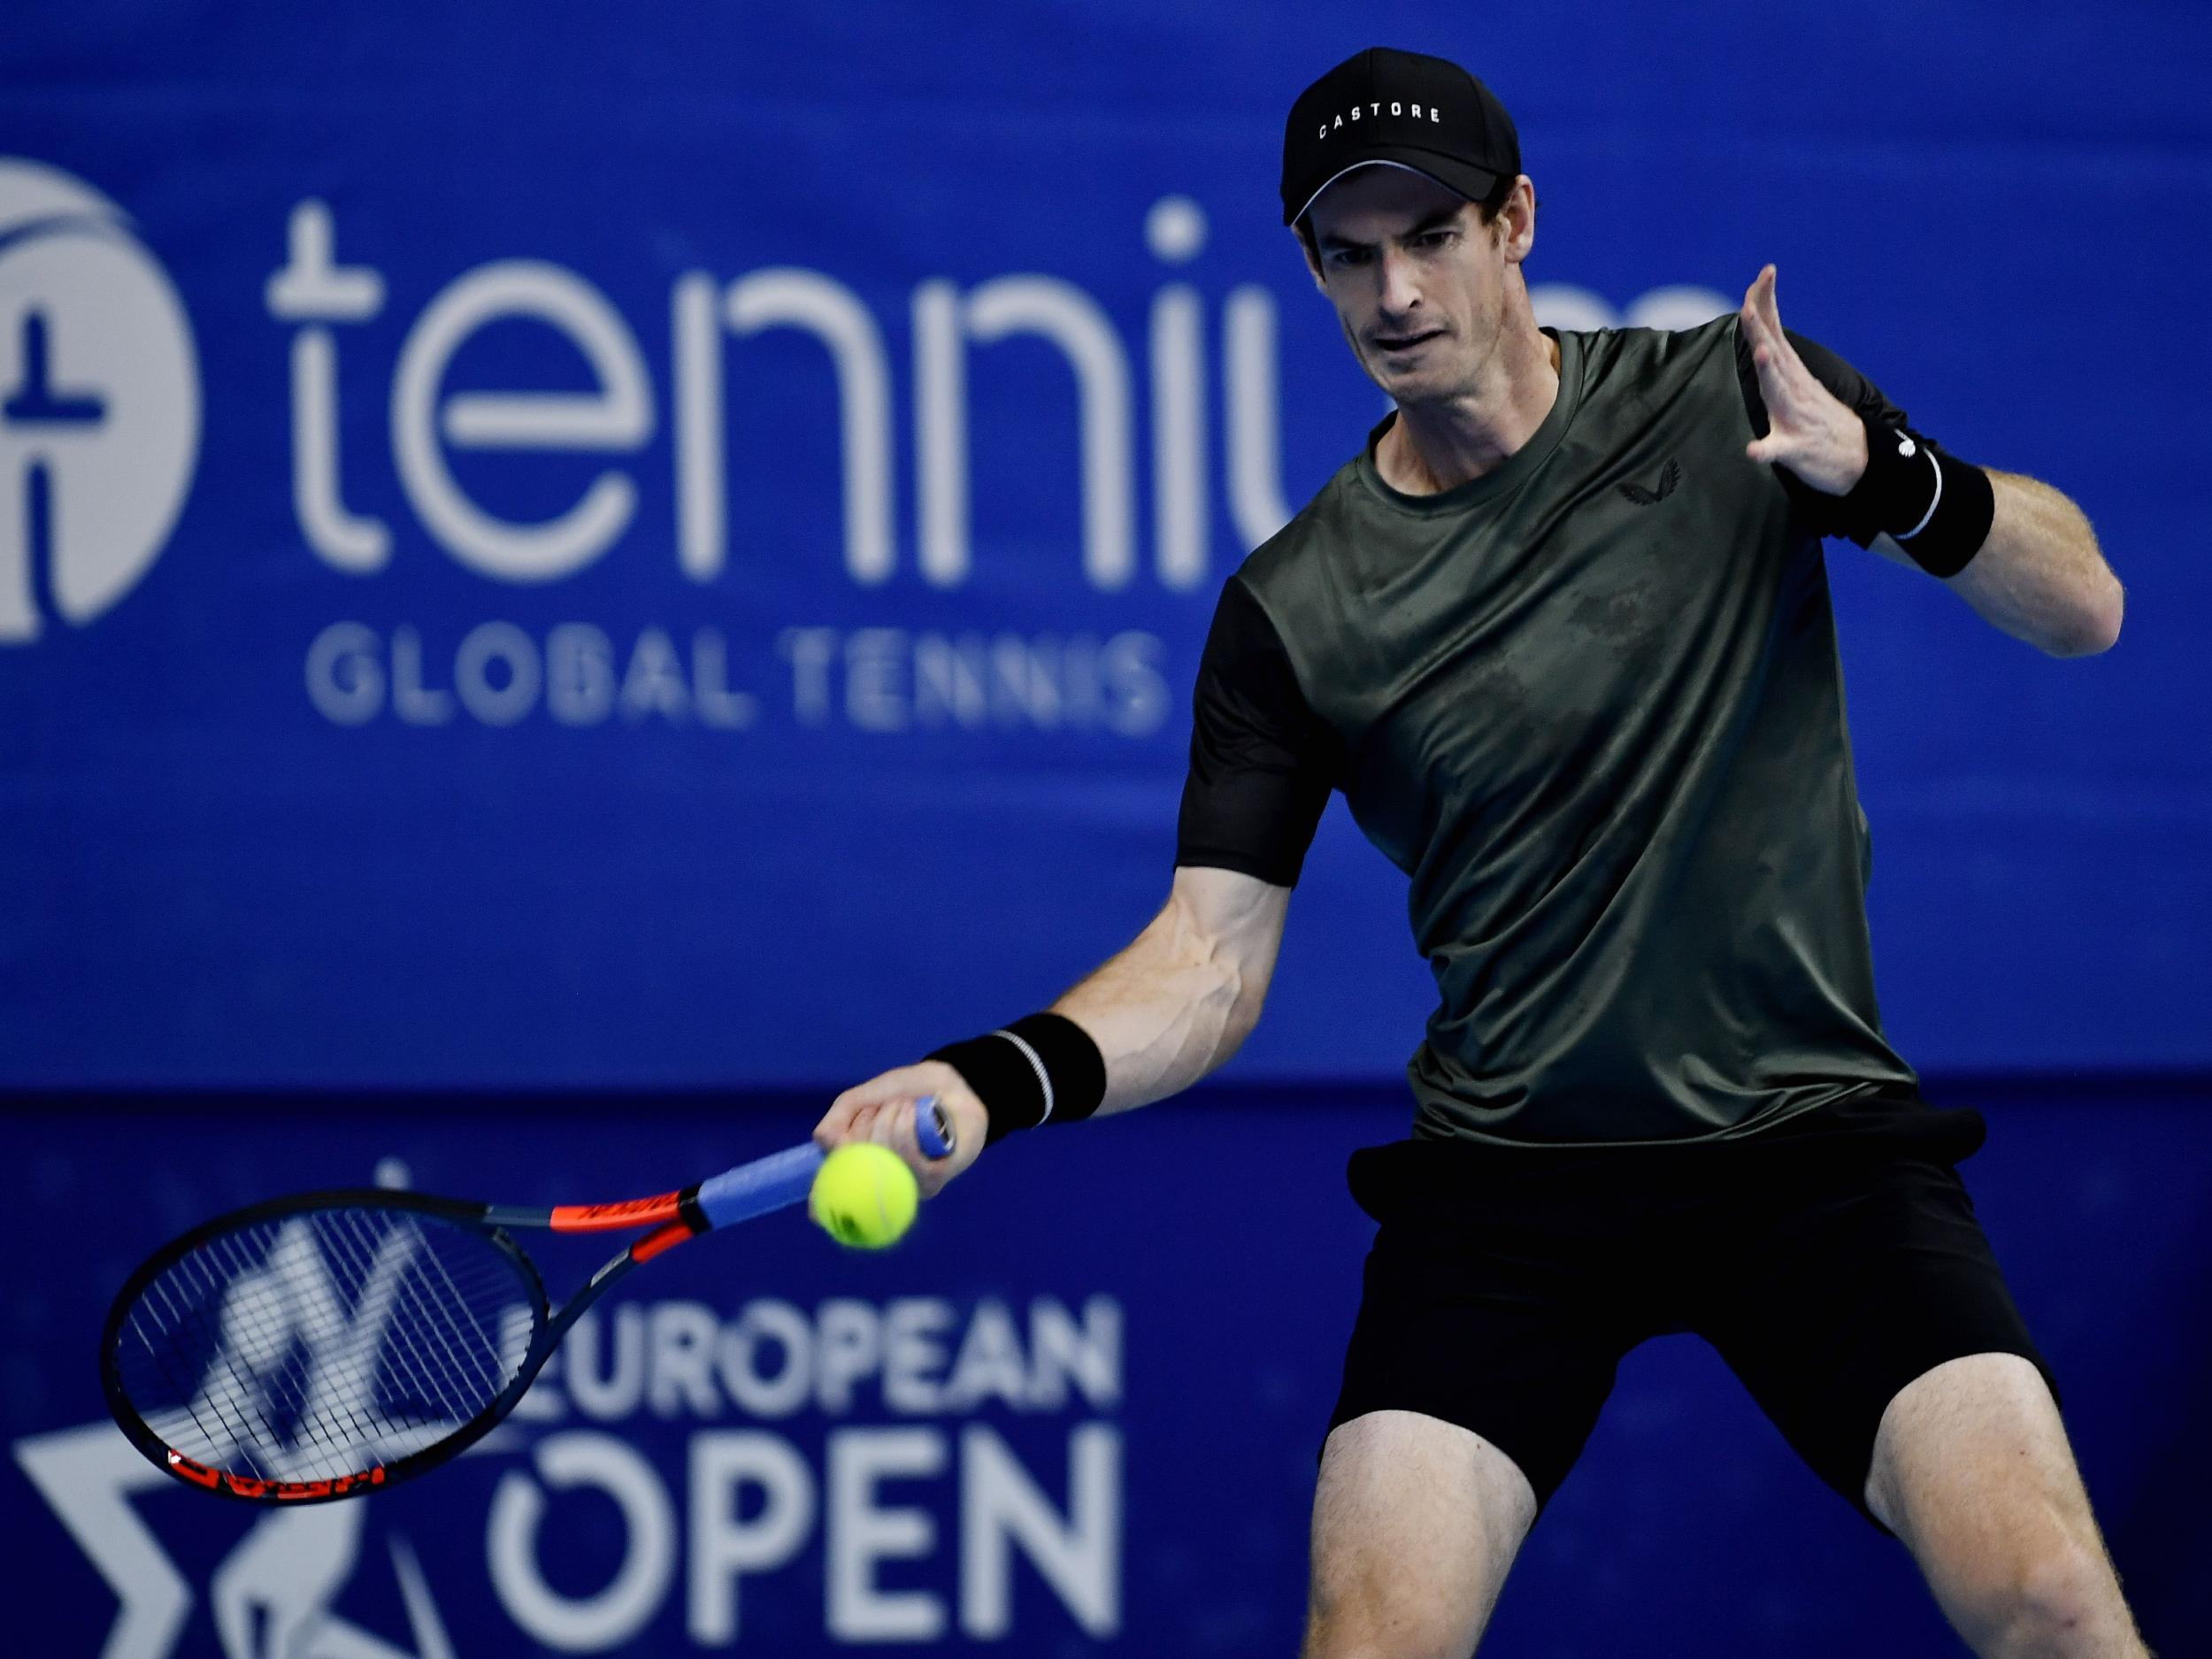 Greg Rusedski warns Andy Murray that it is a 'long road back' to the top of tennis despite promising return